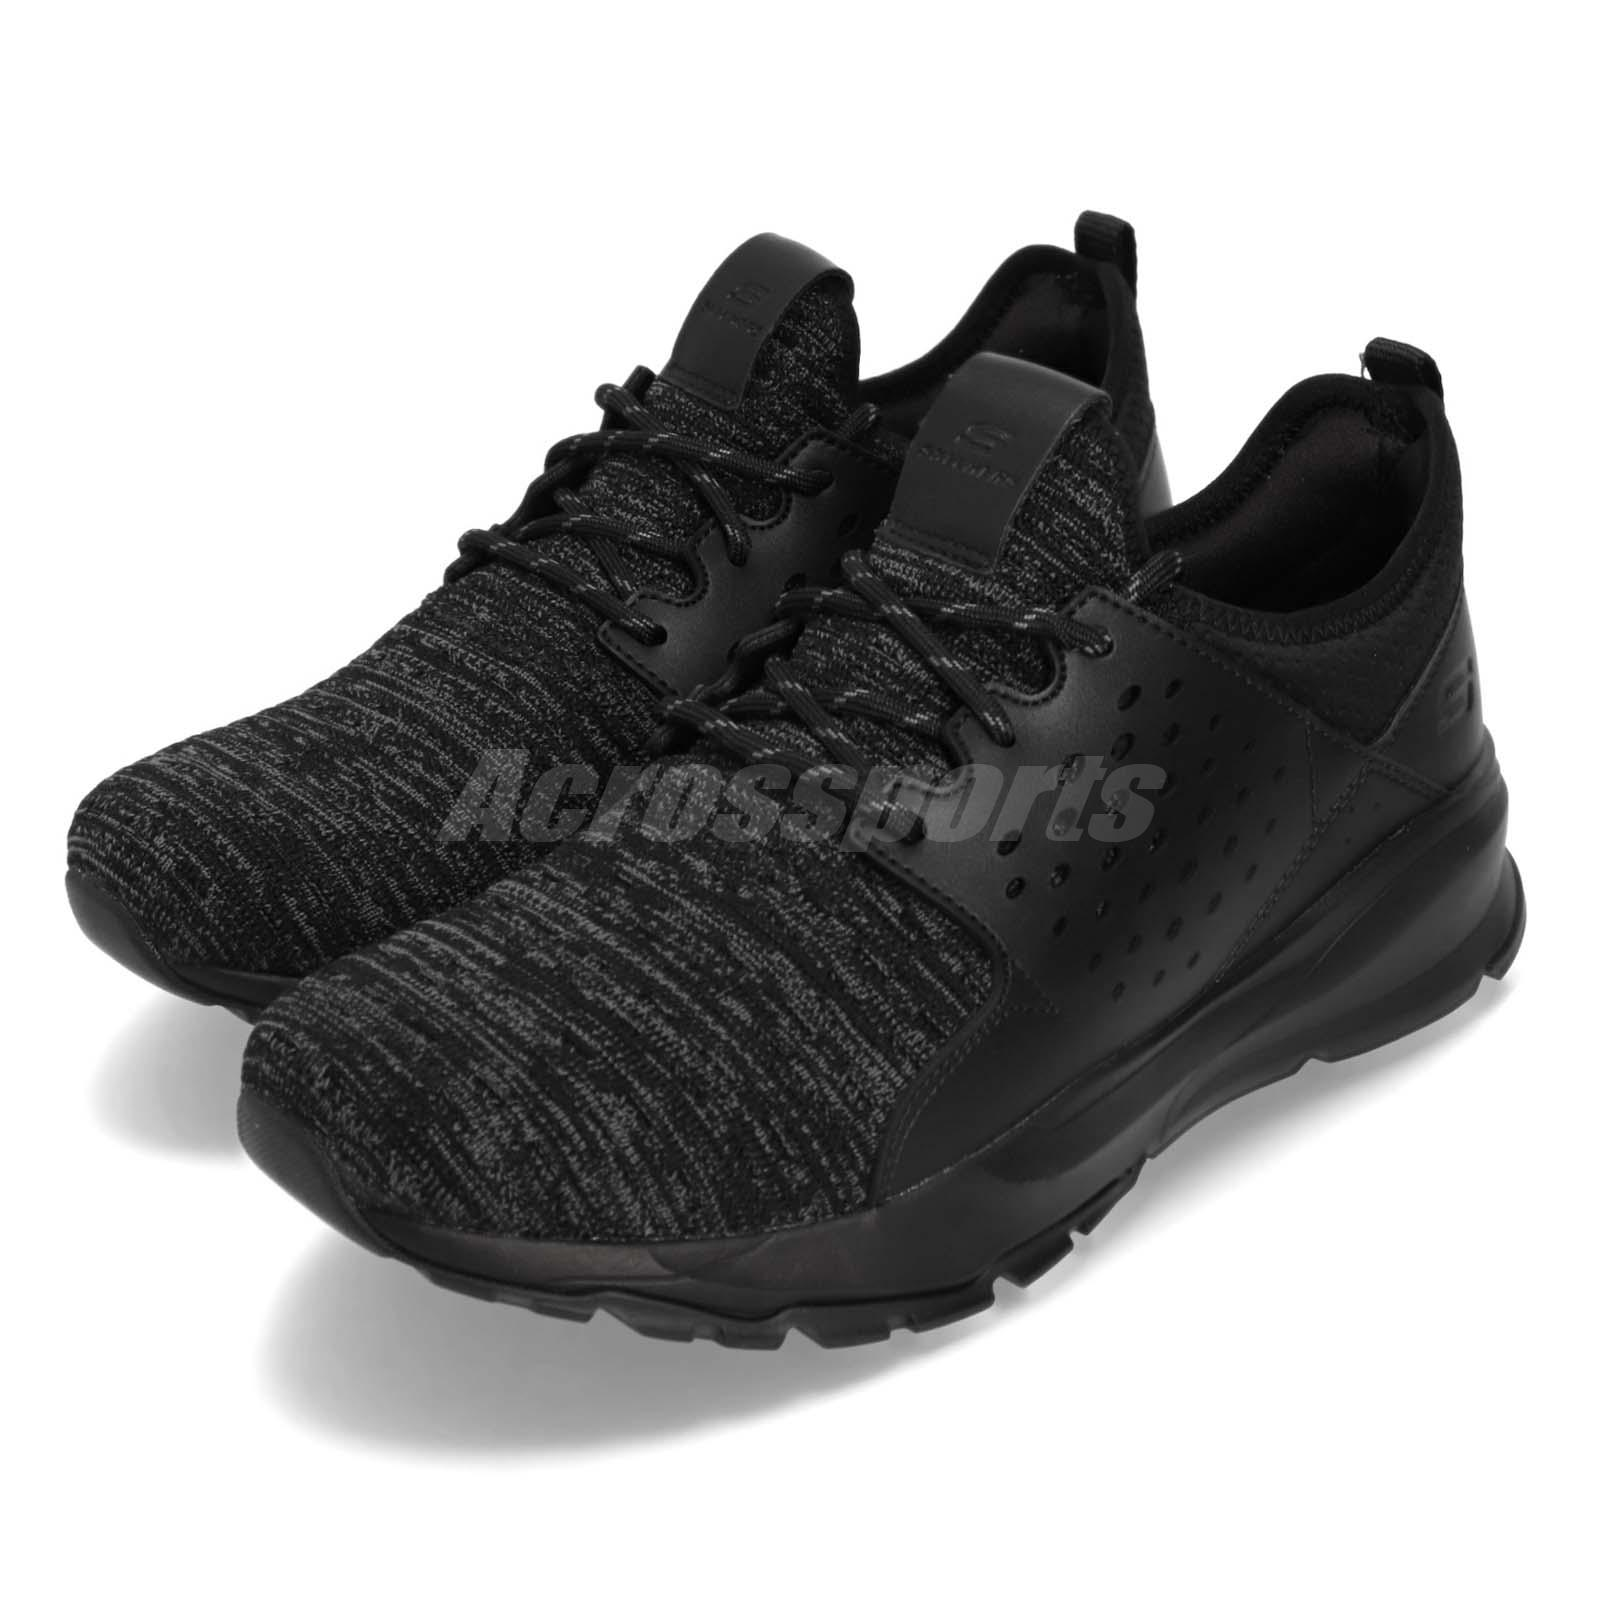 Details about Skechers Relven Velton Black Men Walking Casual Shoes Sneakers 65659W BBK